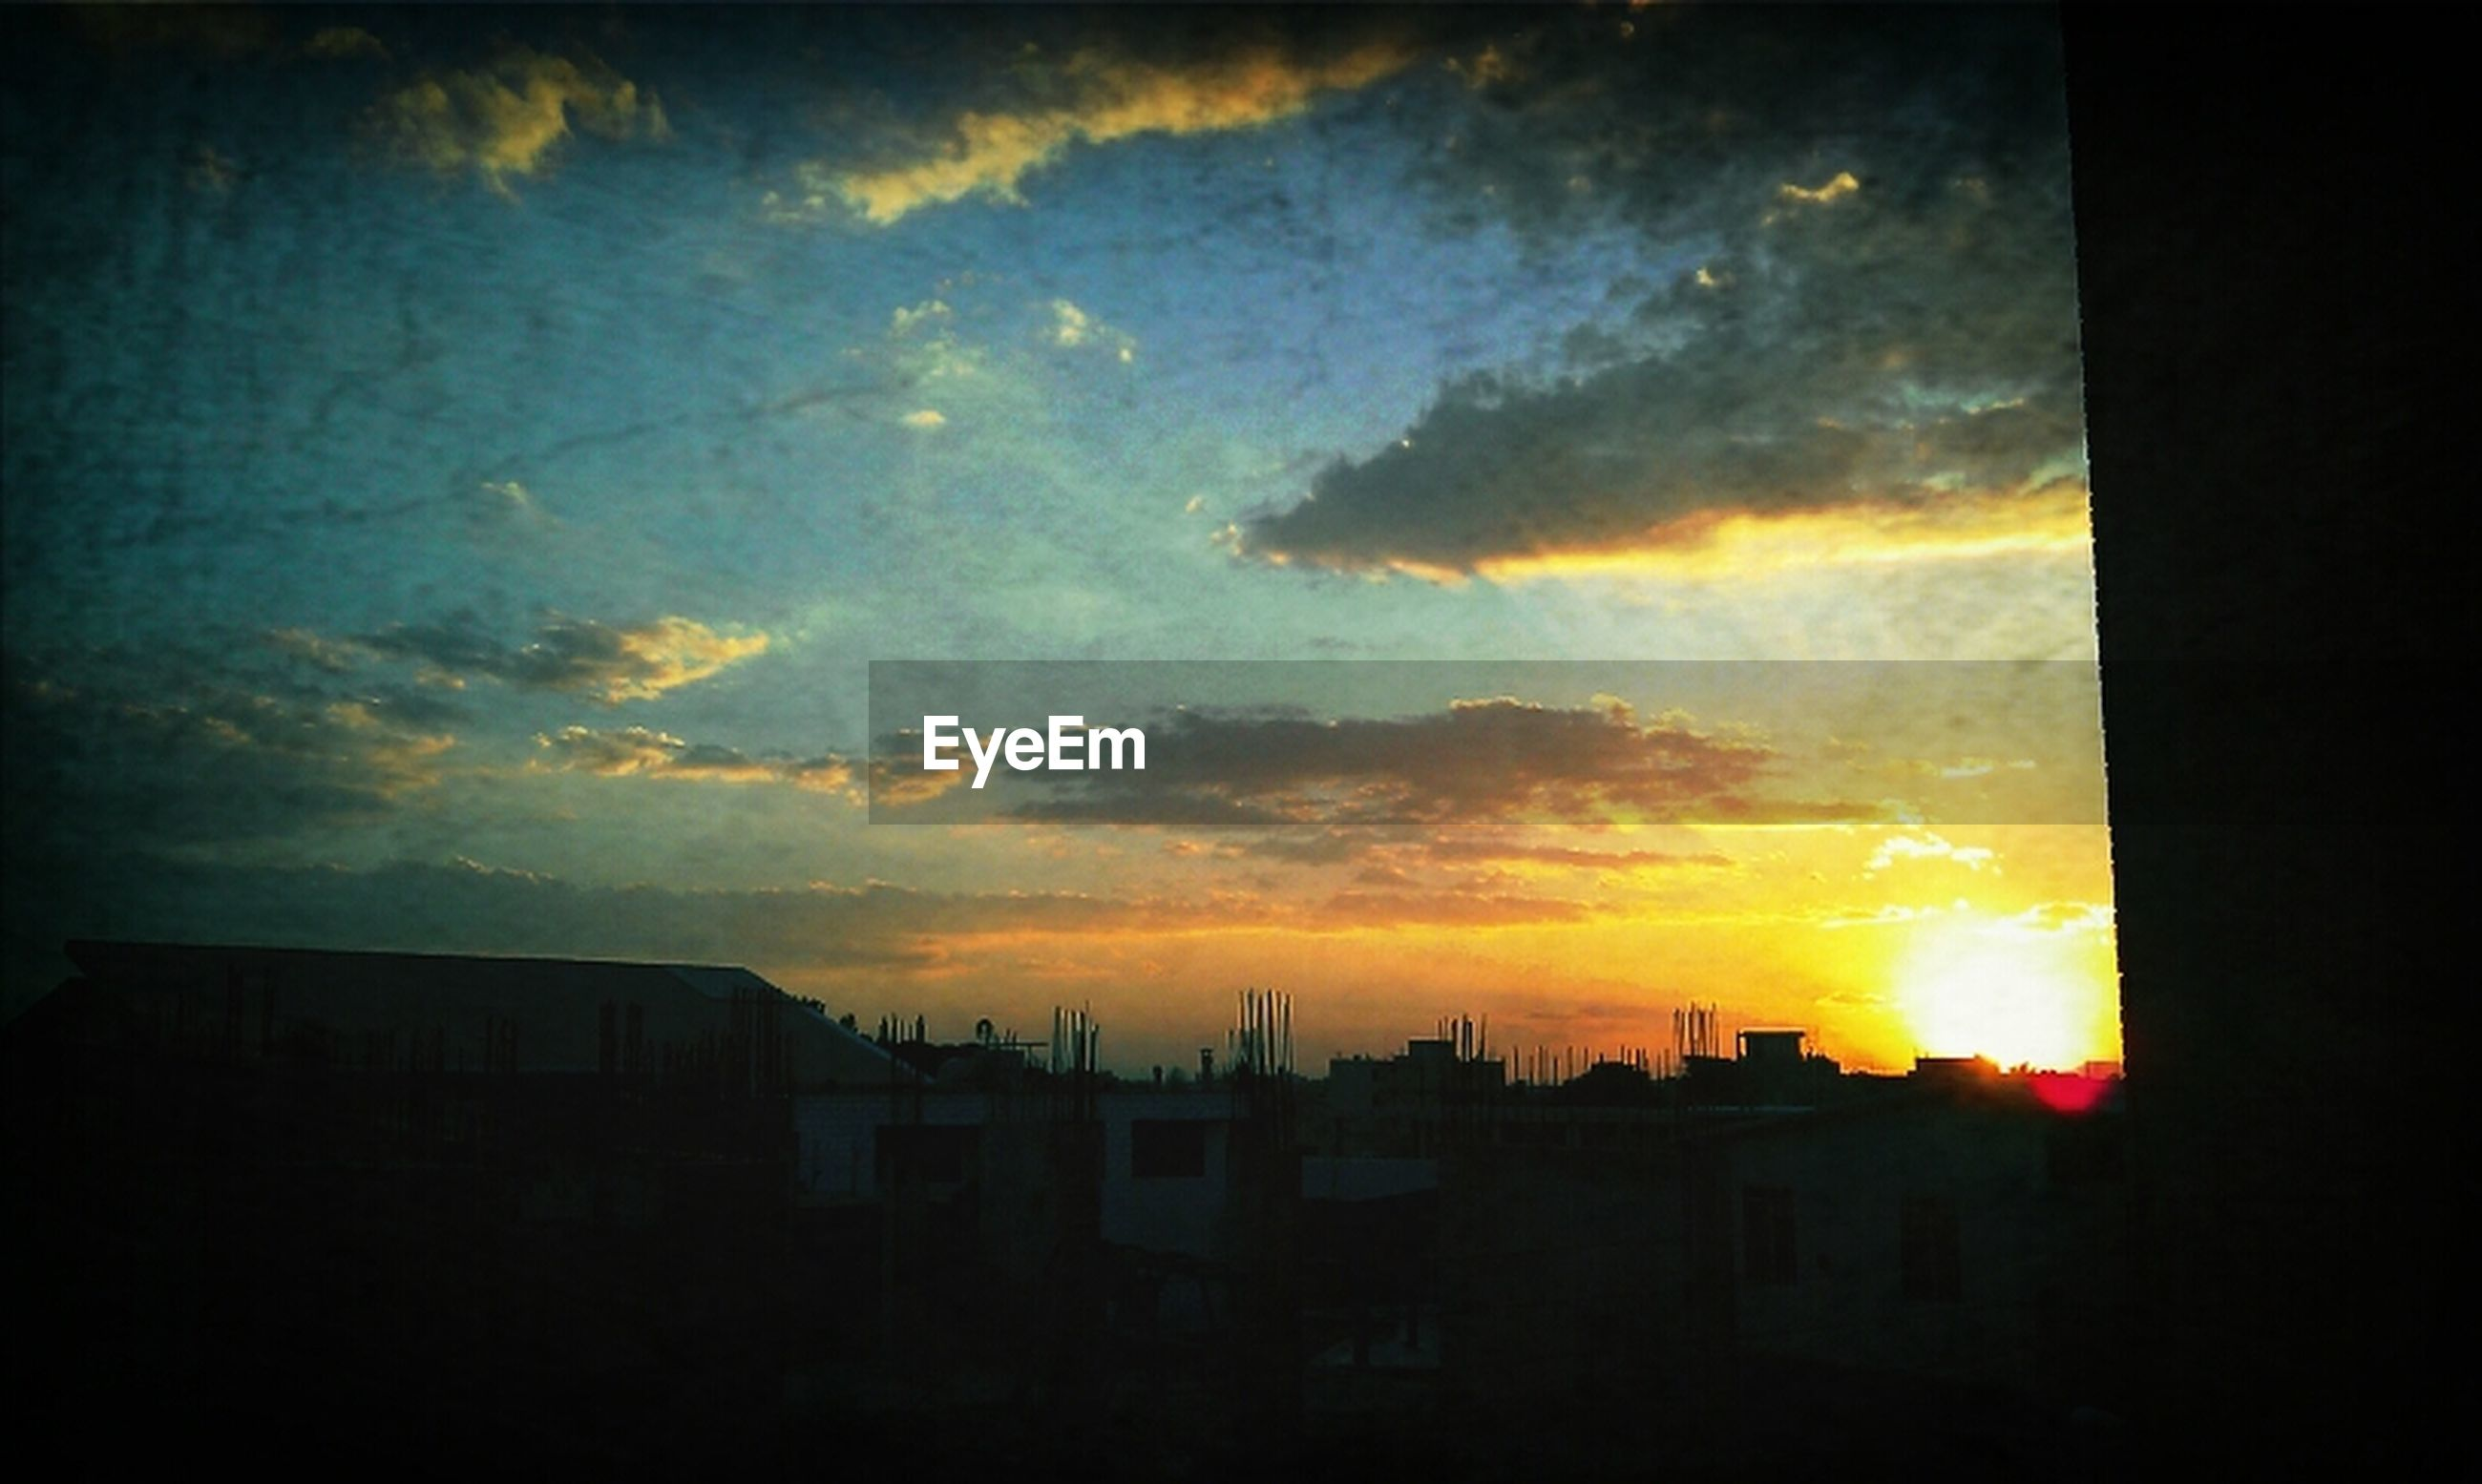 sunset, sky, building exterior, architecture, silhouette, built structure, orange color, cloud - sky, dramatic sky, cloudy, house, beauty in nature, cloud, scenics, low angle view, nature, sun, dark, residential structure, outdoors